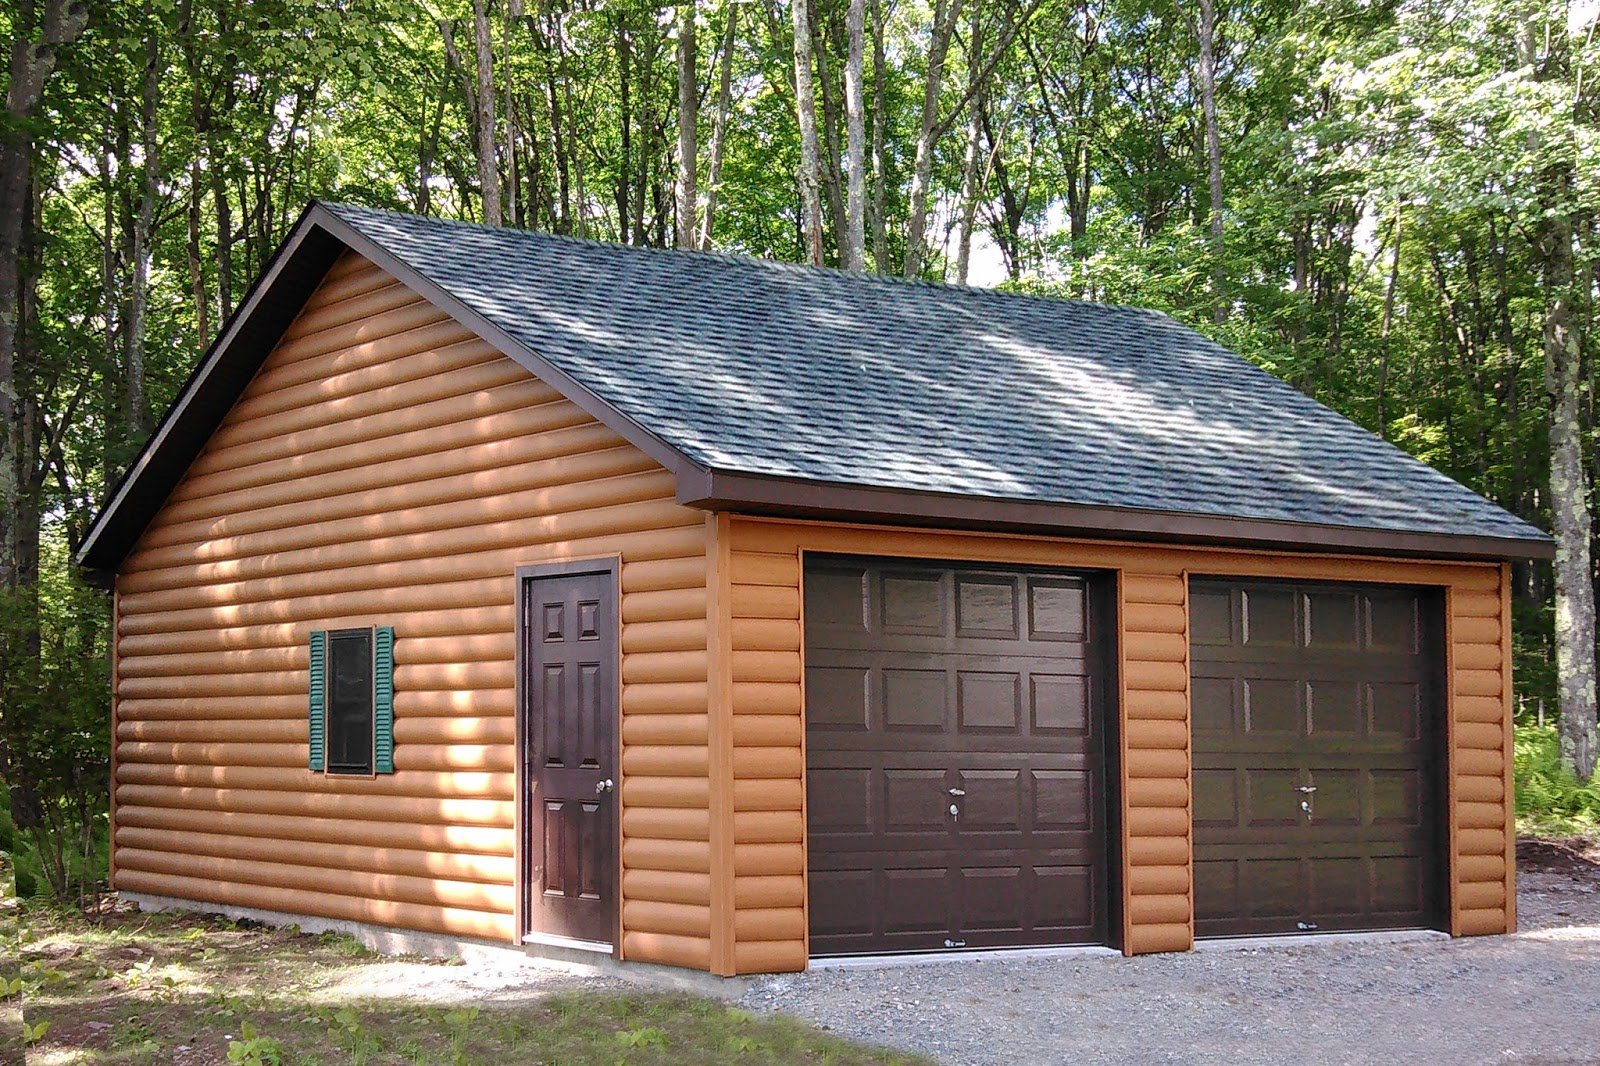 Prefab car garages for sale in pa nj ny ct de md va for One car garage kit with loft